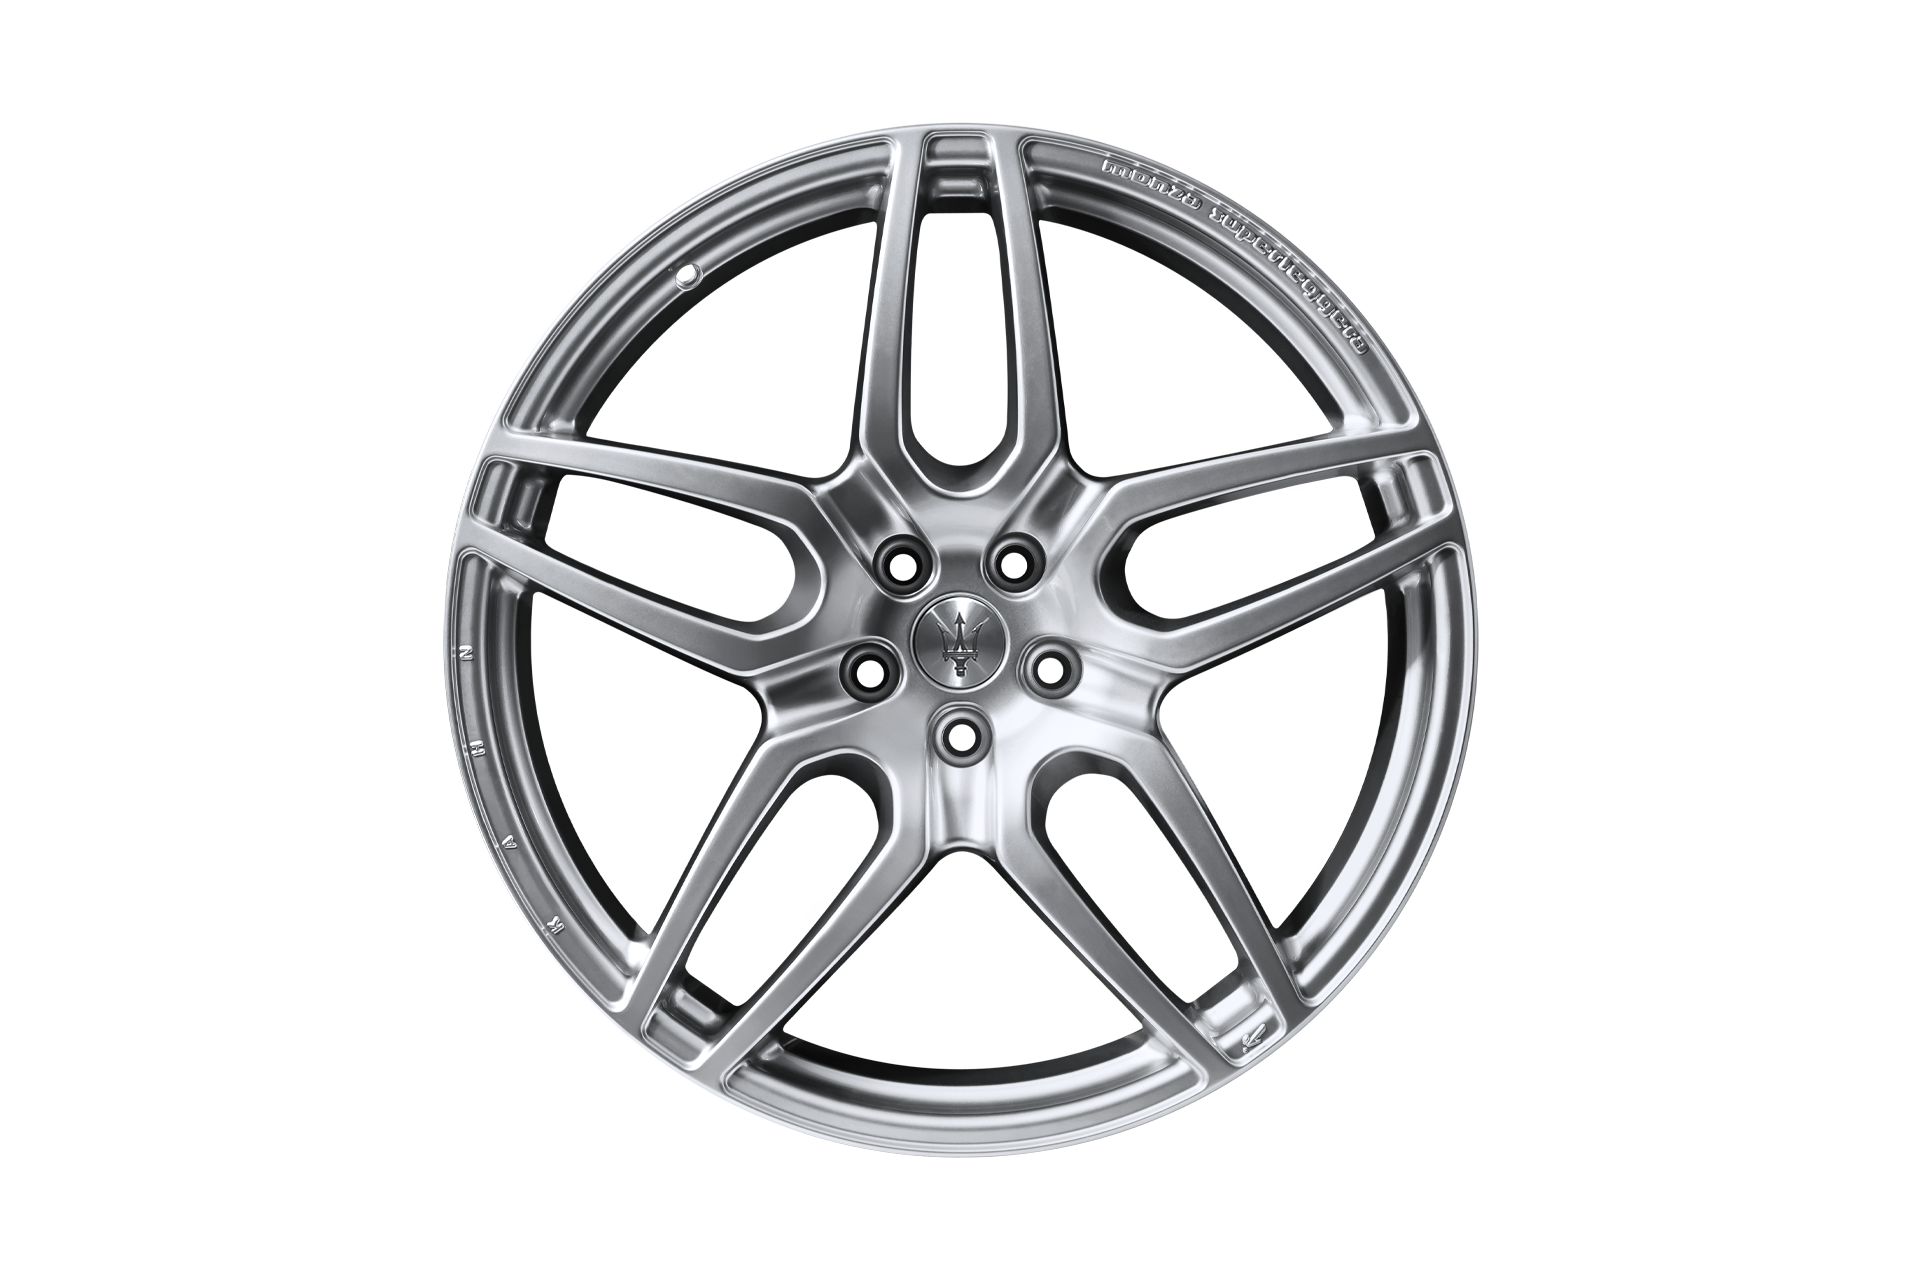 Maserati Gran Tourismo (2007-2019) Monza Super Leggera Light Alloy Wheels